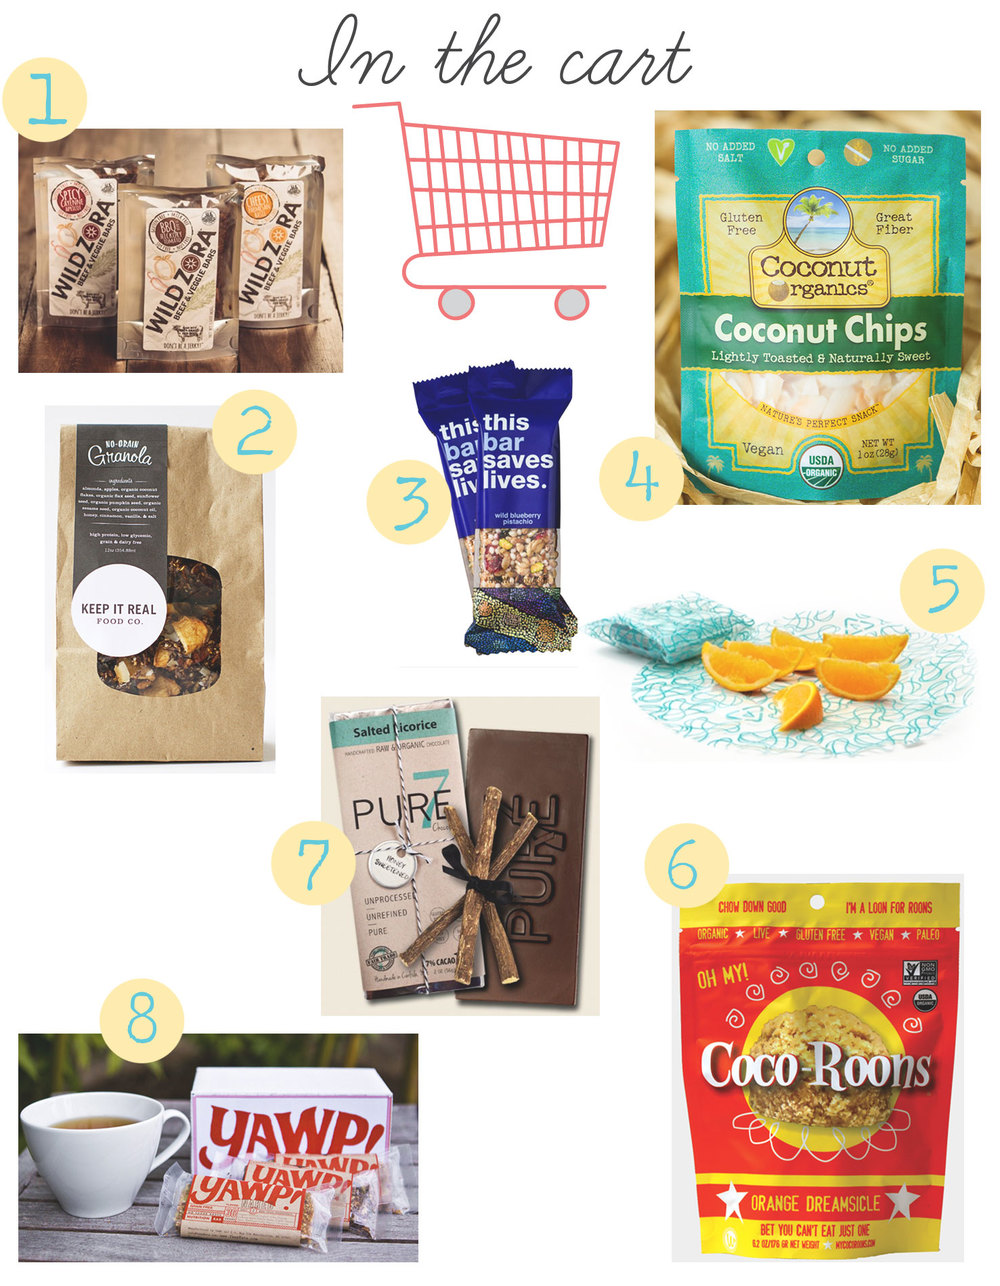 Pin now and enter to win these awesome travel snacks!